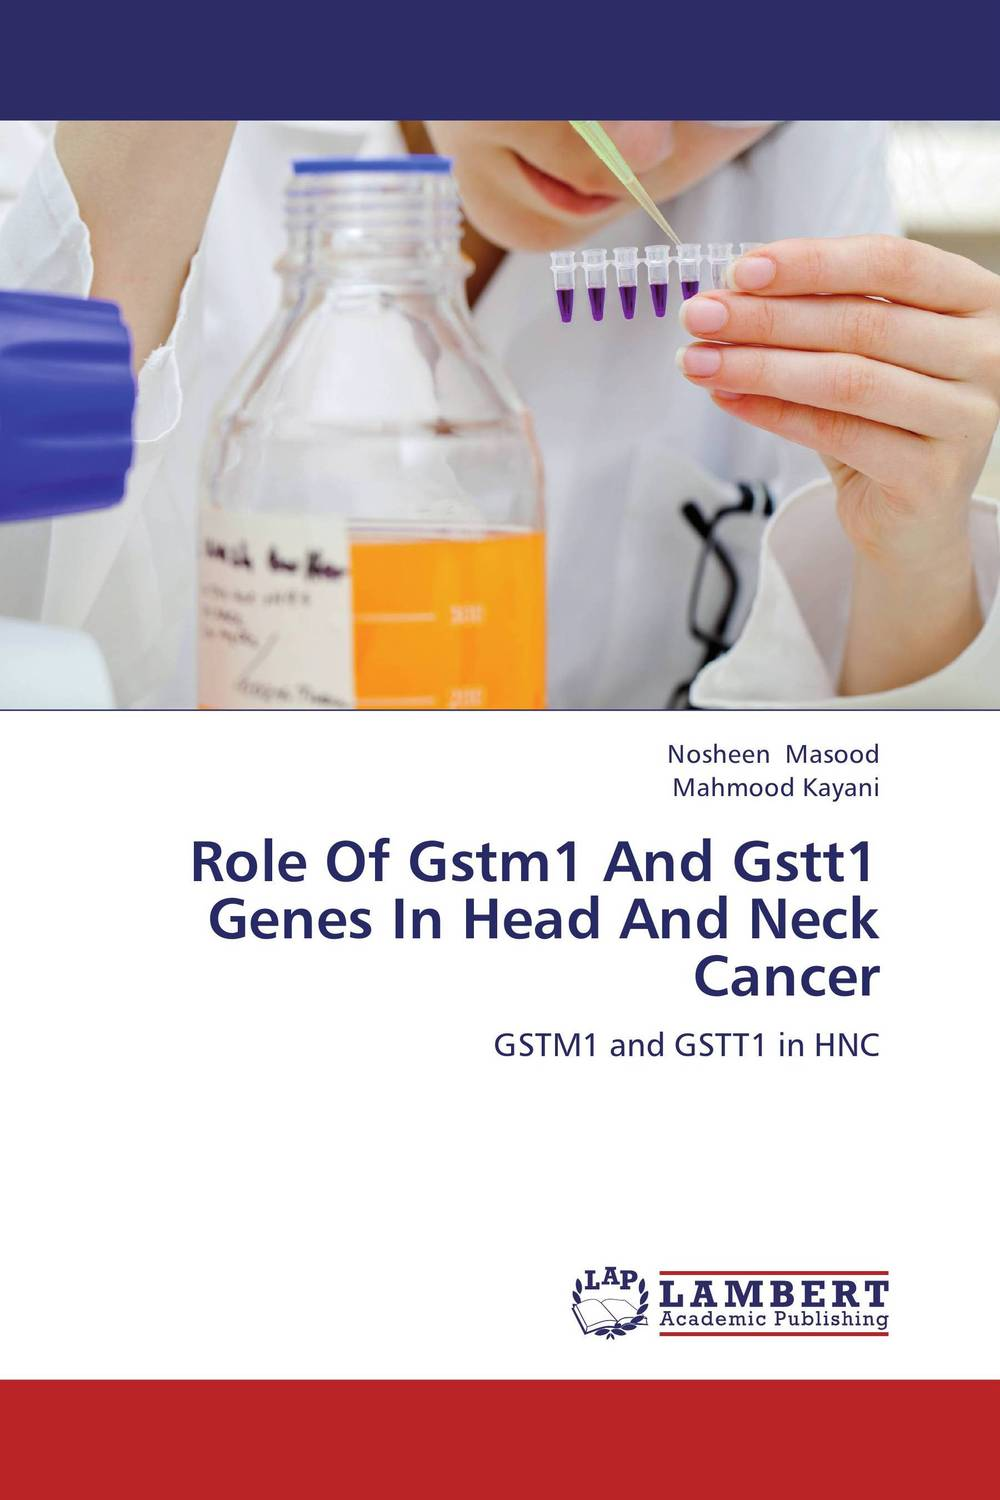 Role Of Gstm1 And Gstt1 Genes In Head And Neck Cancer growth factors and their receptors in cell differentiation cancer and cancer therapy